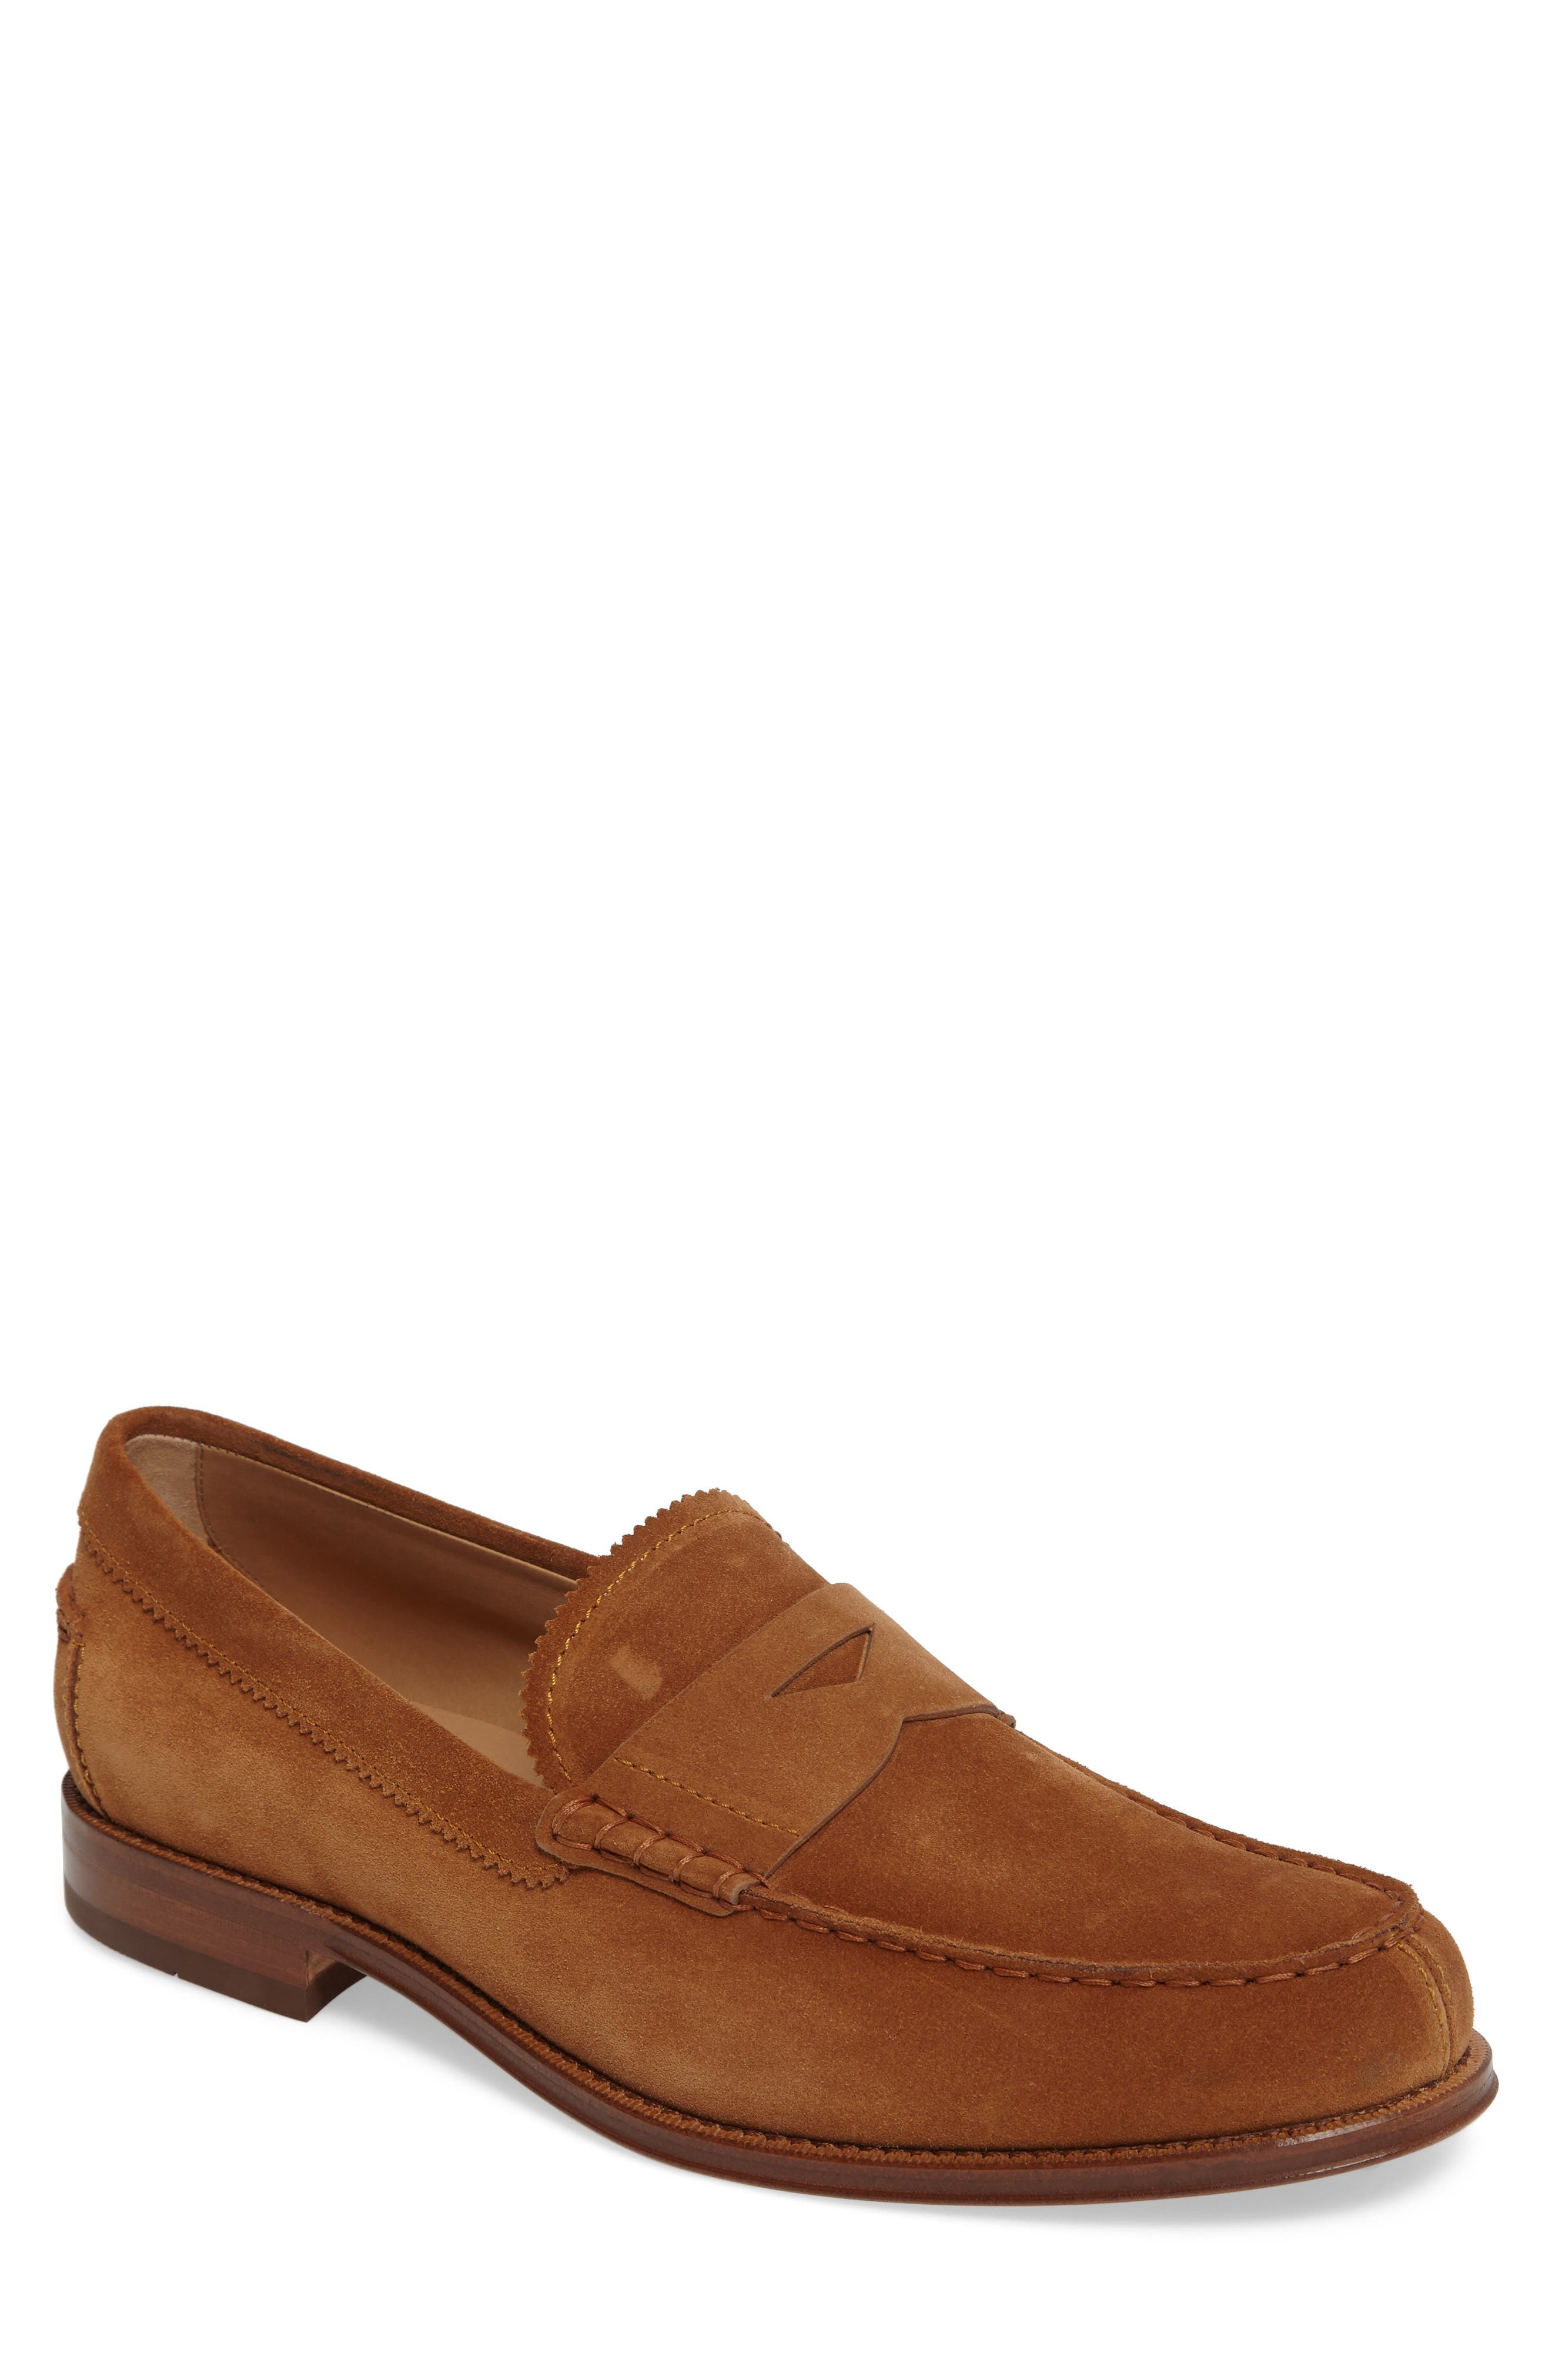 Suede Penny Loafer,                             Main thumbnail 1, color,